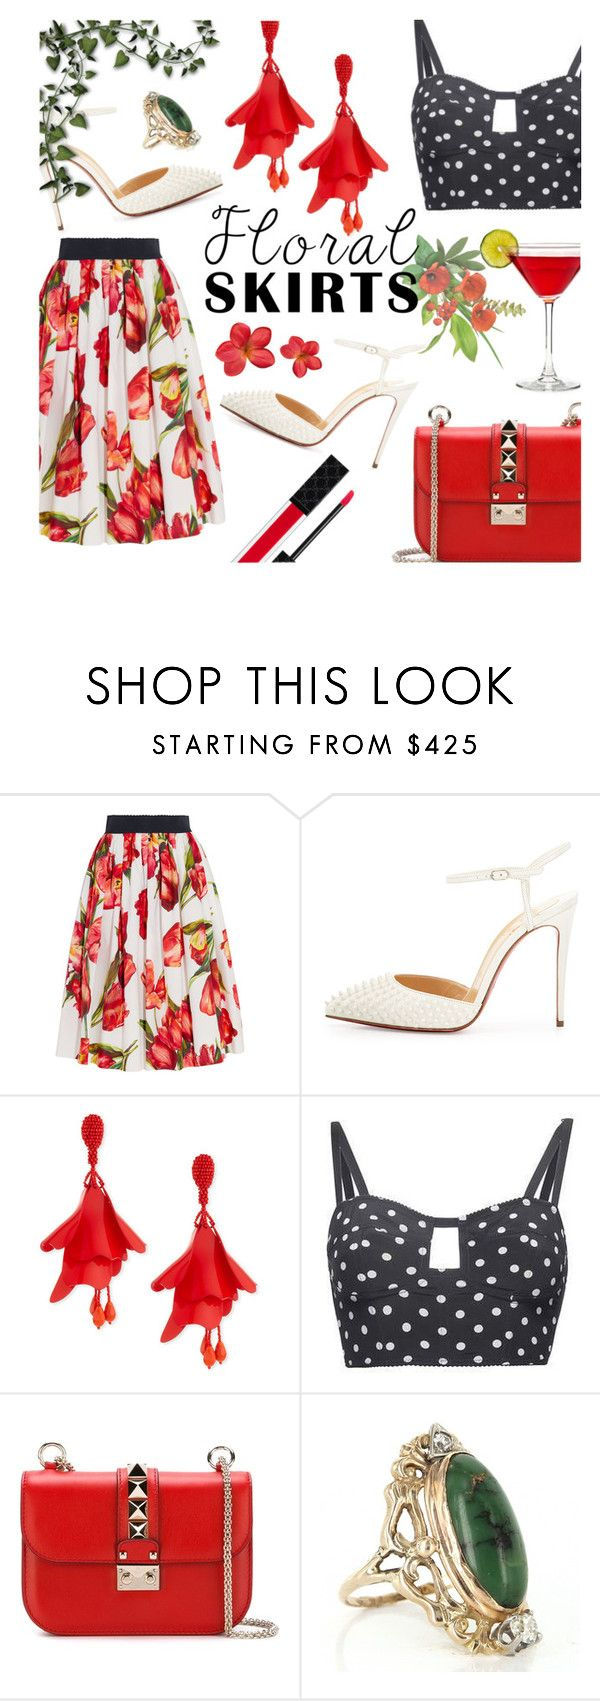 """""""The Perfect Floral Summer Skirt"""" by rosalind10 ❤ liked on Polyvore featuring Dolce&Gabbana, Christian Louboutin, Oscar de la Renta, Valentino, Vintage, Gucci, dolceandgabbana, valentino, christianlouboutin and tulips"""